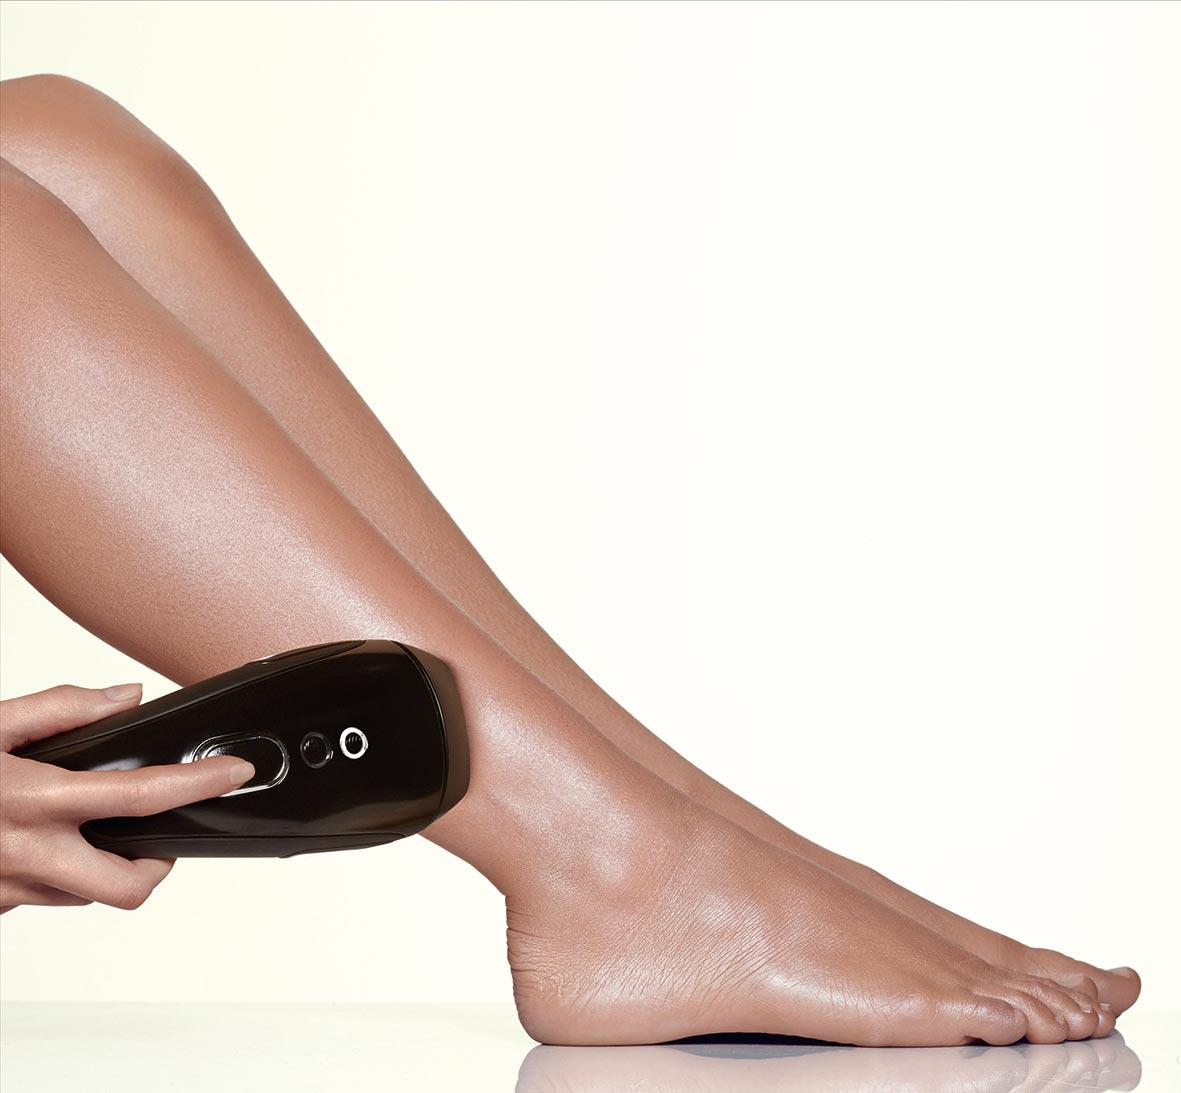 For a chance to win a Smoothskin Gold IPL hair removal device, RT and follow @hellofashion_uk and @SmoothSkinIPL!